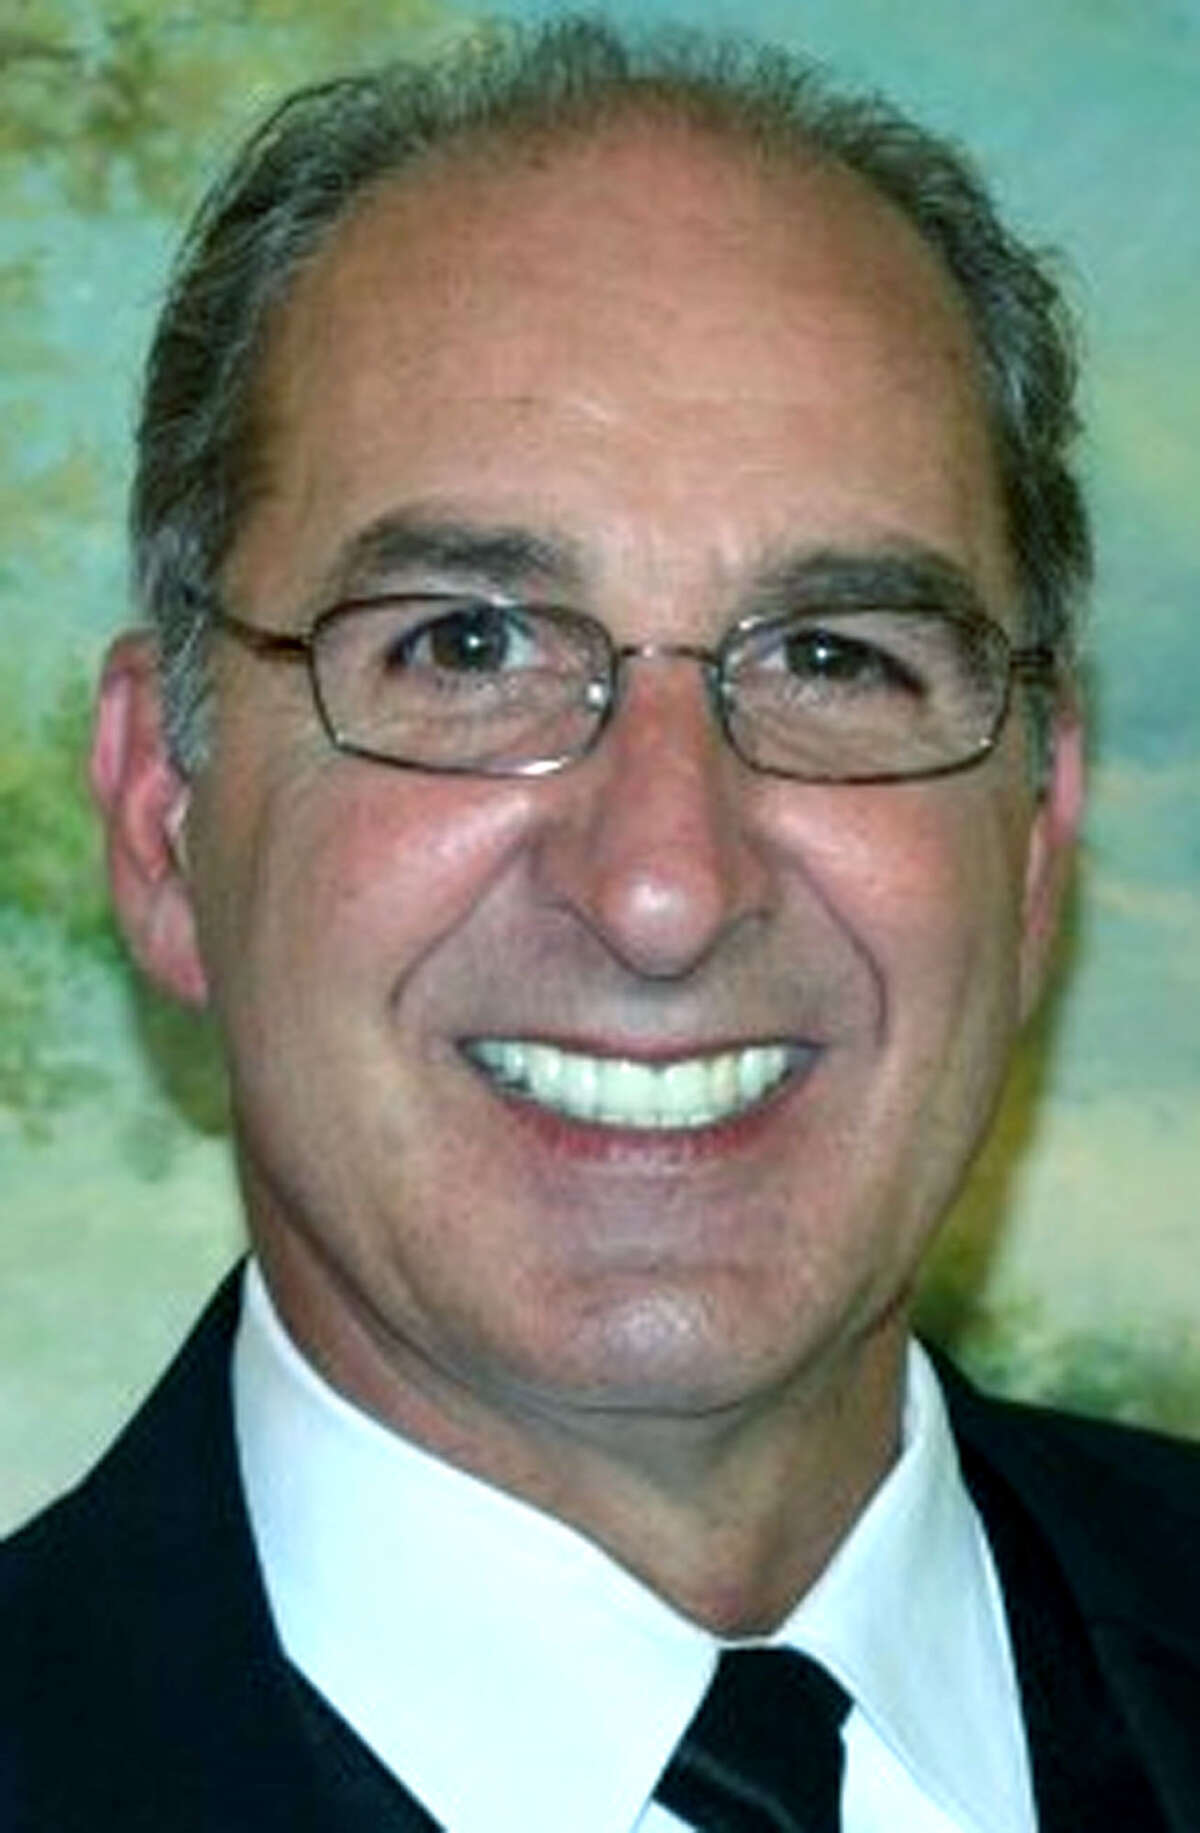 James Quinlan, 56, of St. Charles, Ill., died Jan. 29, 2013, at Delnor-Community Hospital in Geneva, Ill. He was husband of Anna (Testolin) Quinlan. He was born April 20, 1956, in New Milford, the son of Thomas and Marian (Seely) Quinlan. He was united in marriage to Anna Testolin on June 6, 1981. in South Holland, Ill.